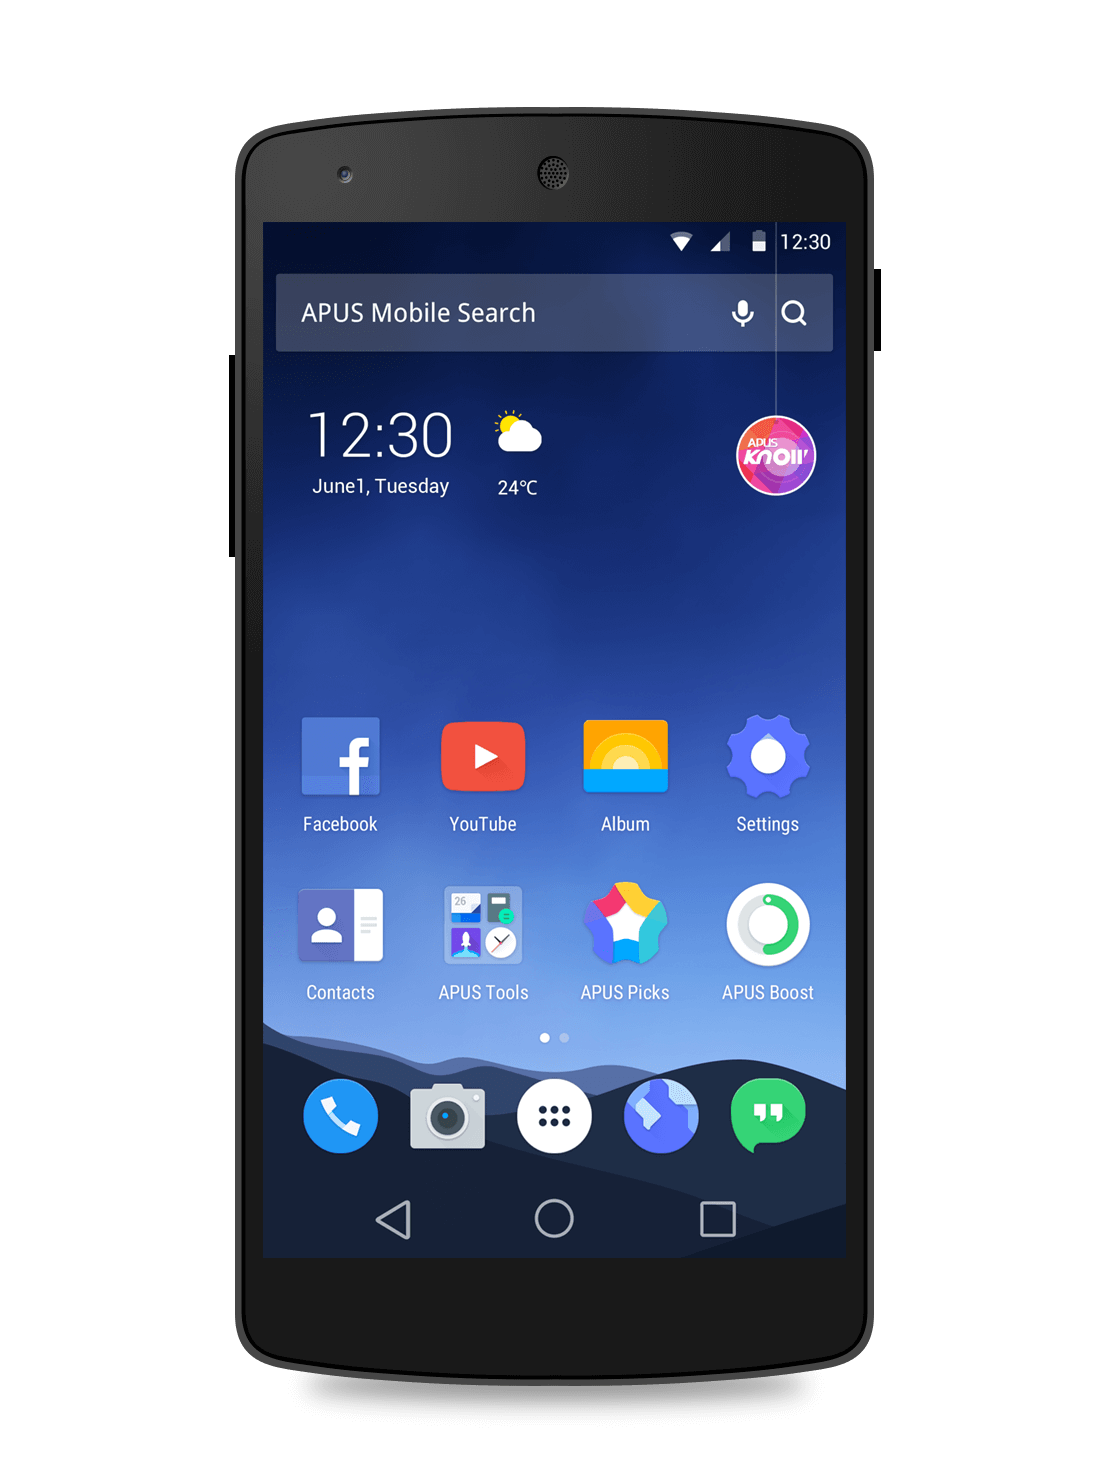 Android Launcher, APUS Launcher for Android, Fast & Simple.